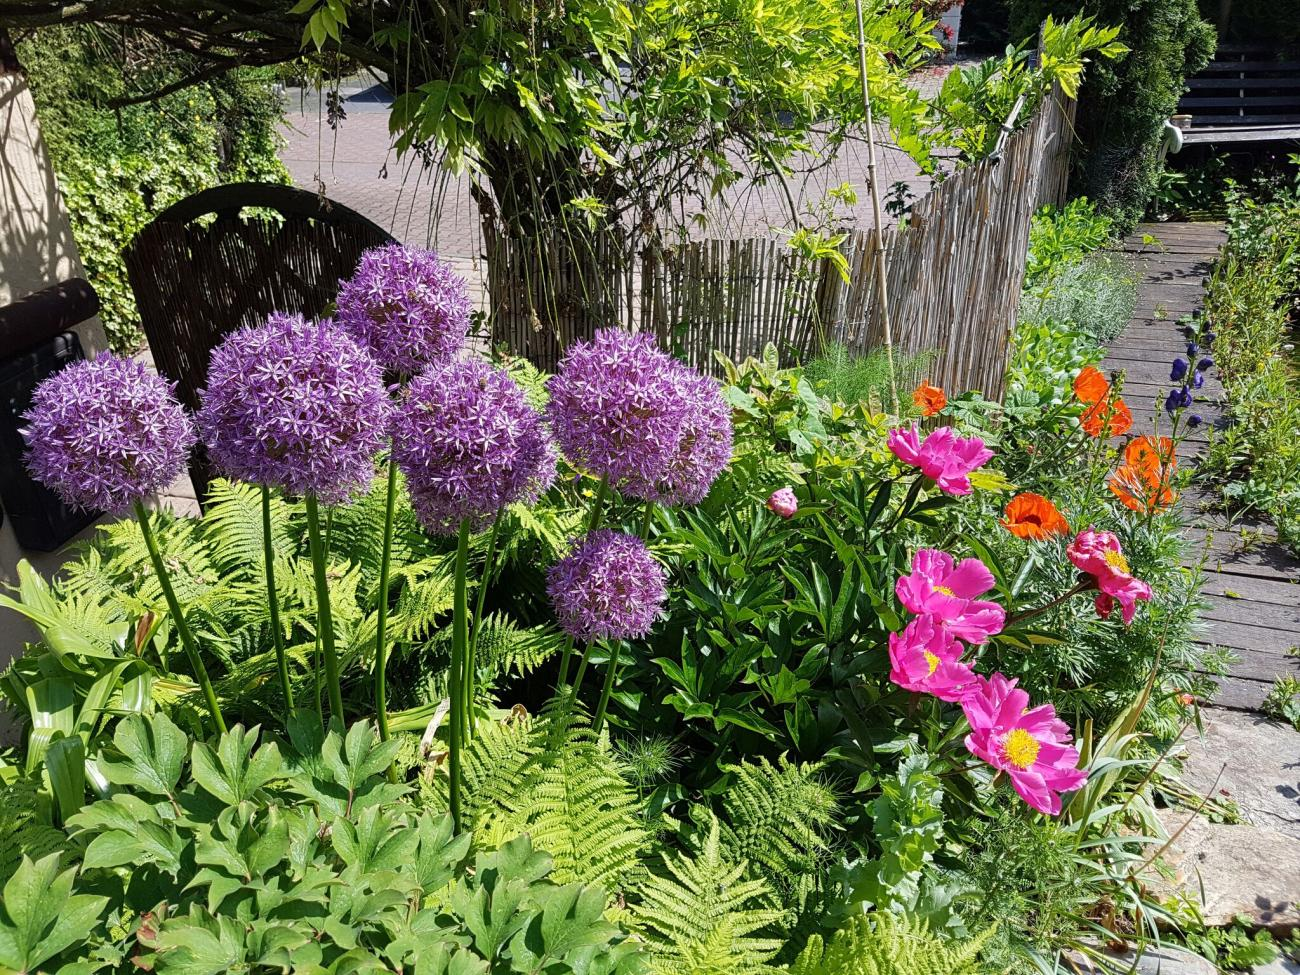 Allium: The Ornamental Onions